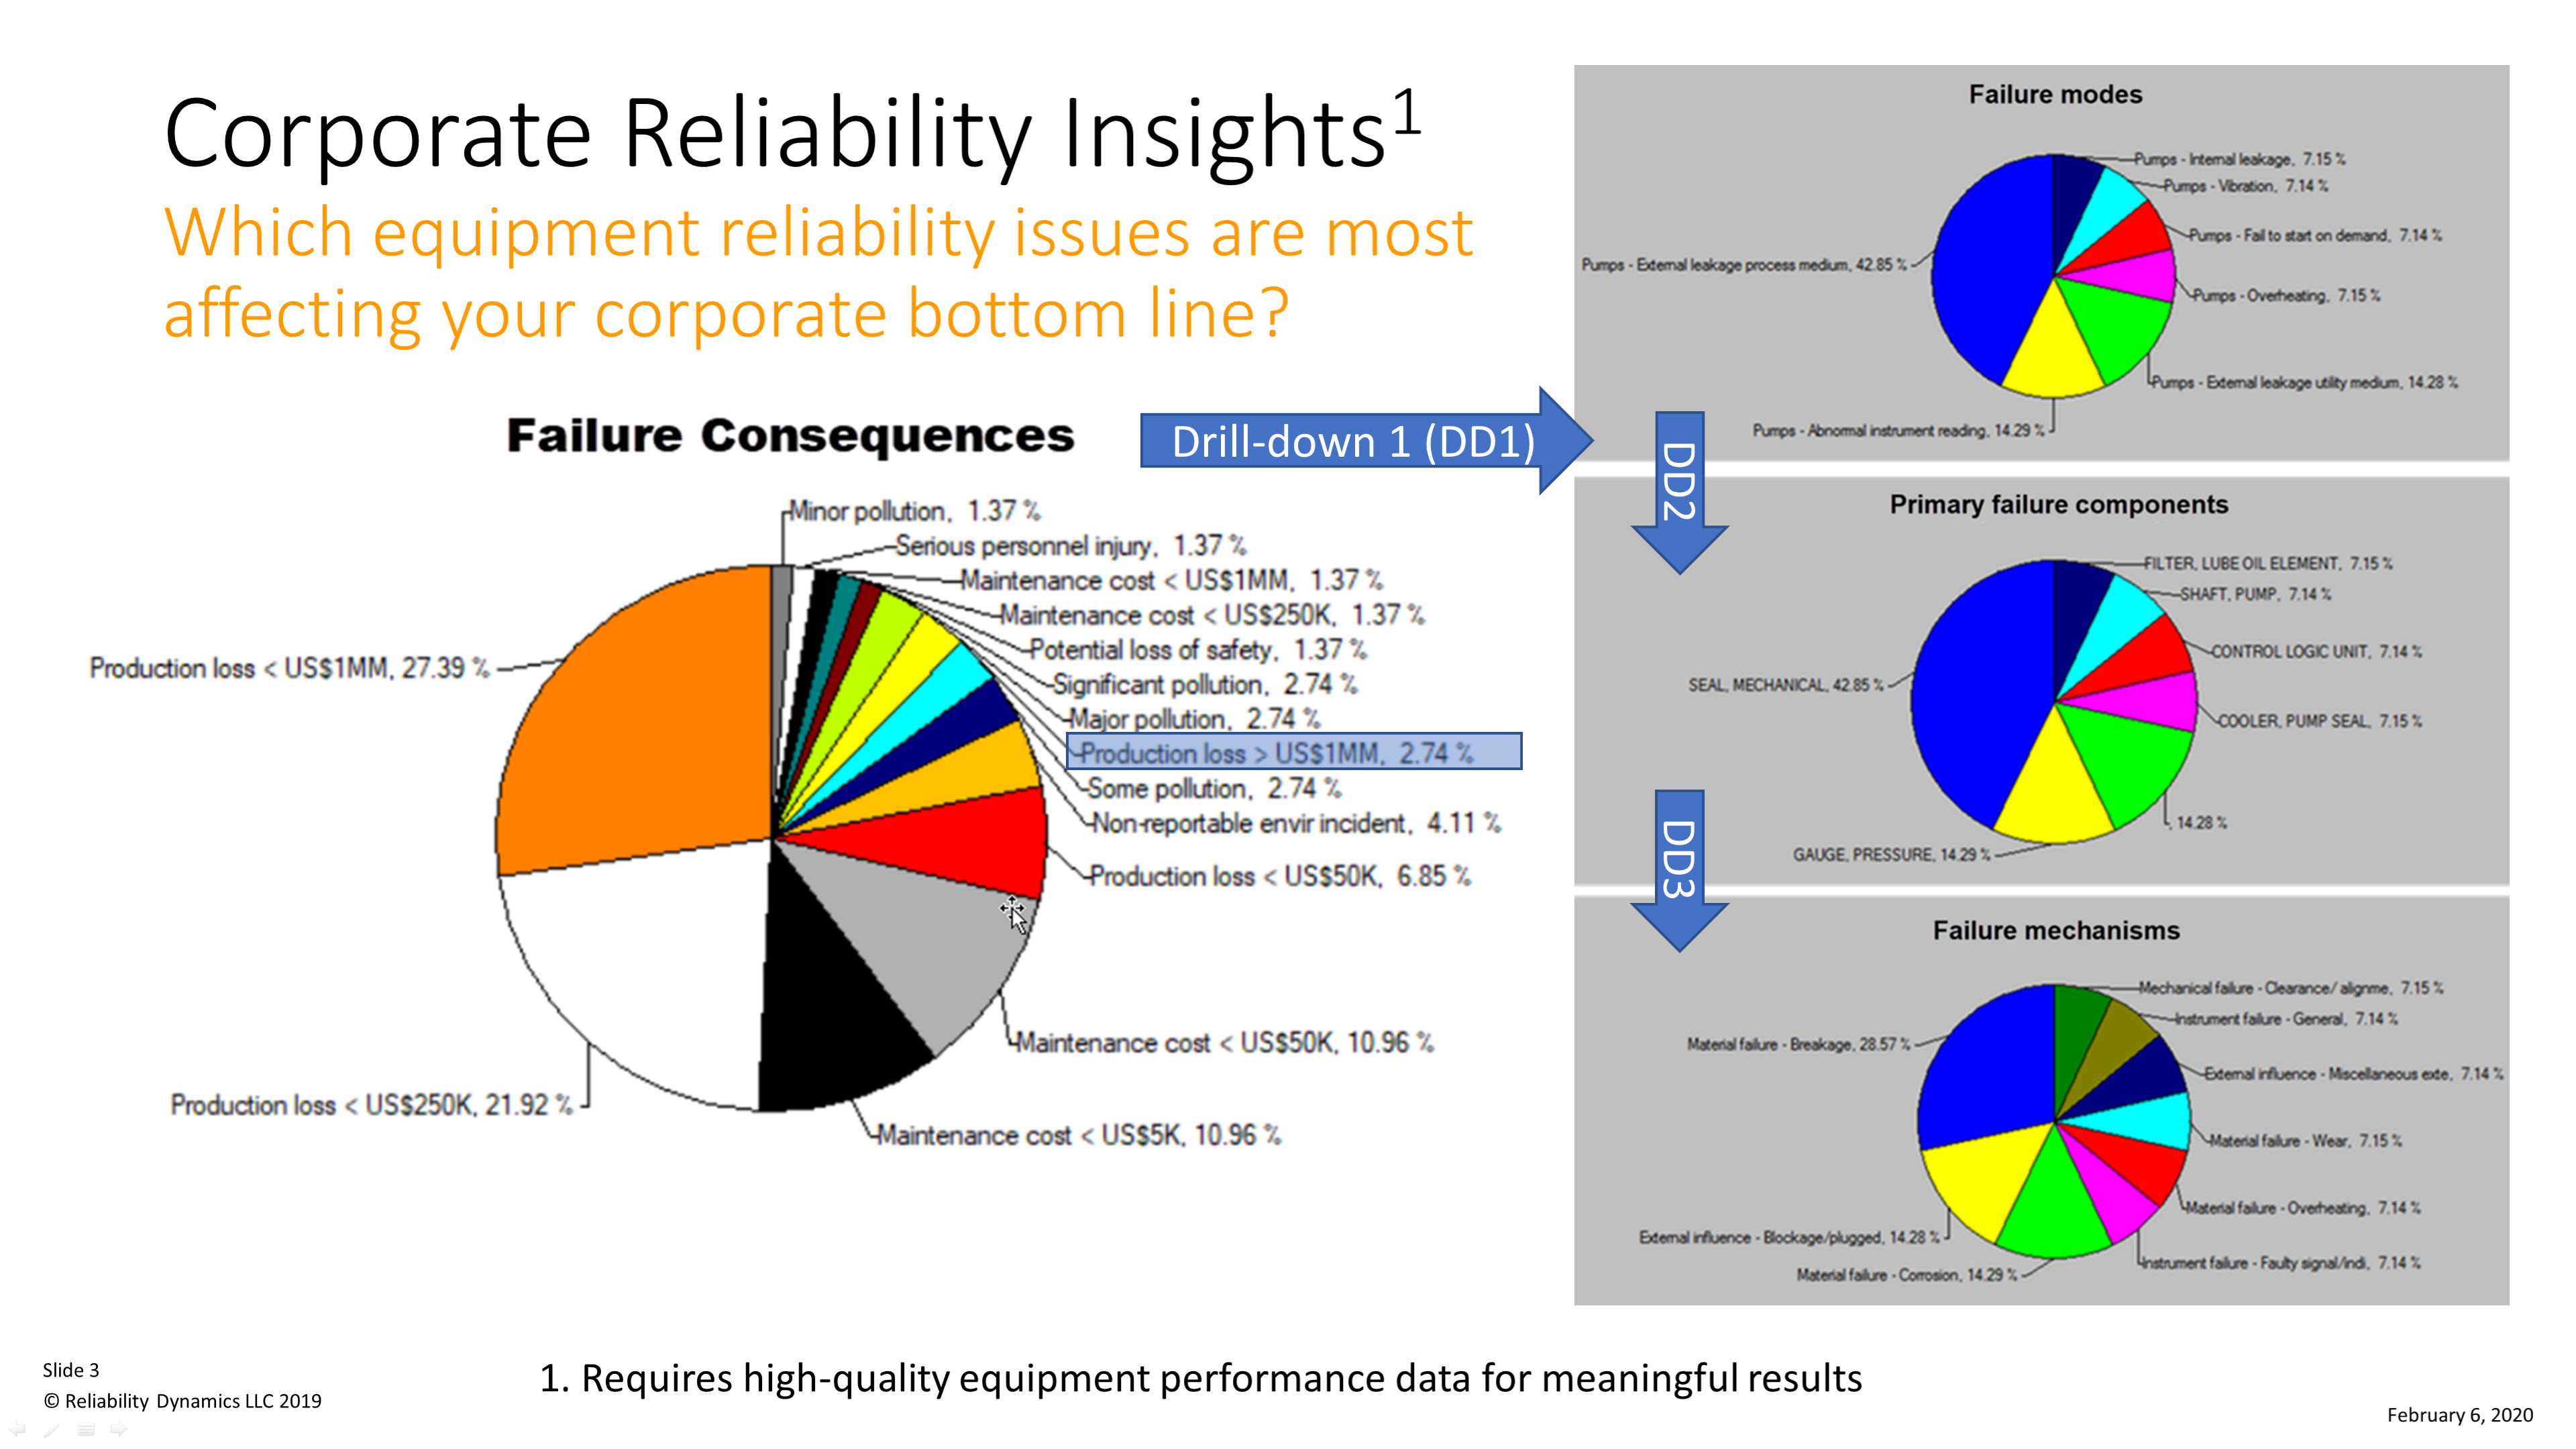 Corporate Reliability Insights